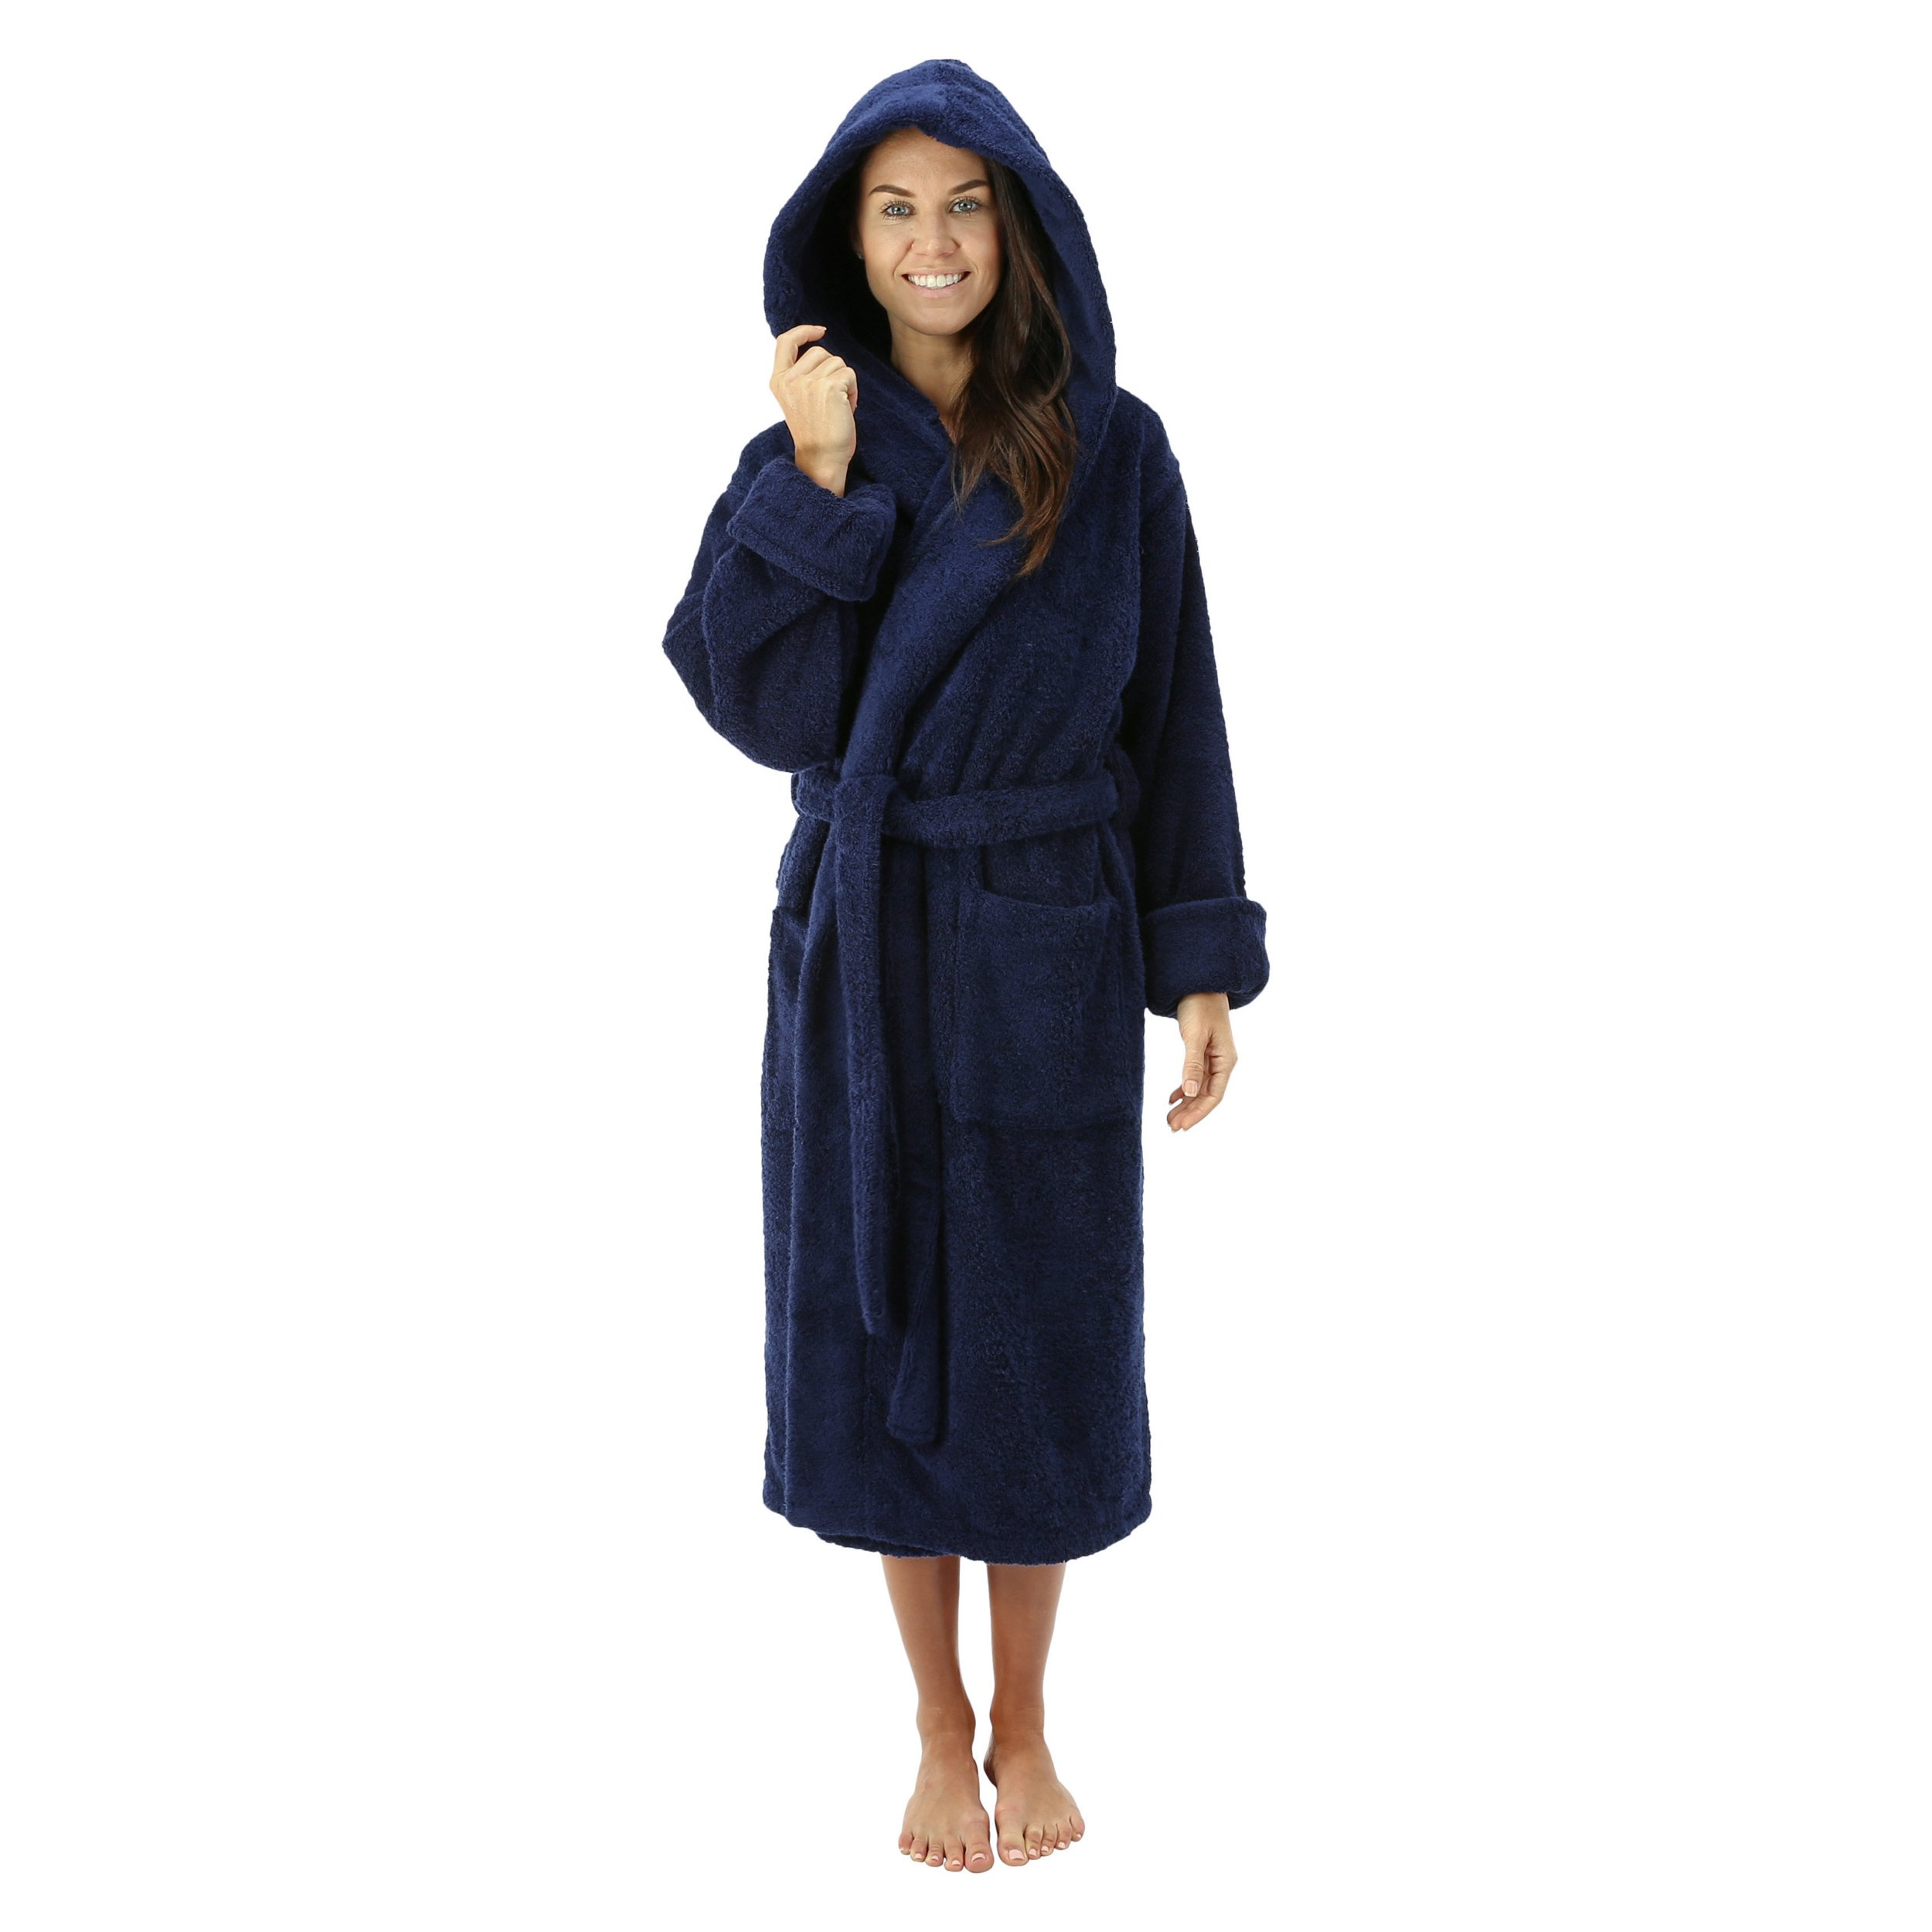 Comfy Robes Personalized Women's Deluxe 20 oz. Turkish Cotton Hooded Bathrobe, XS Navy by Comfy Robes